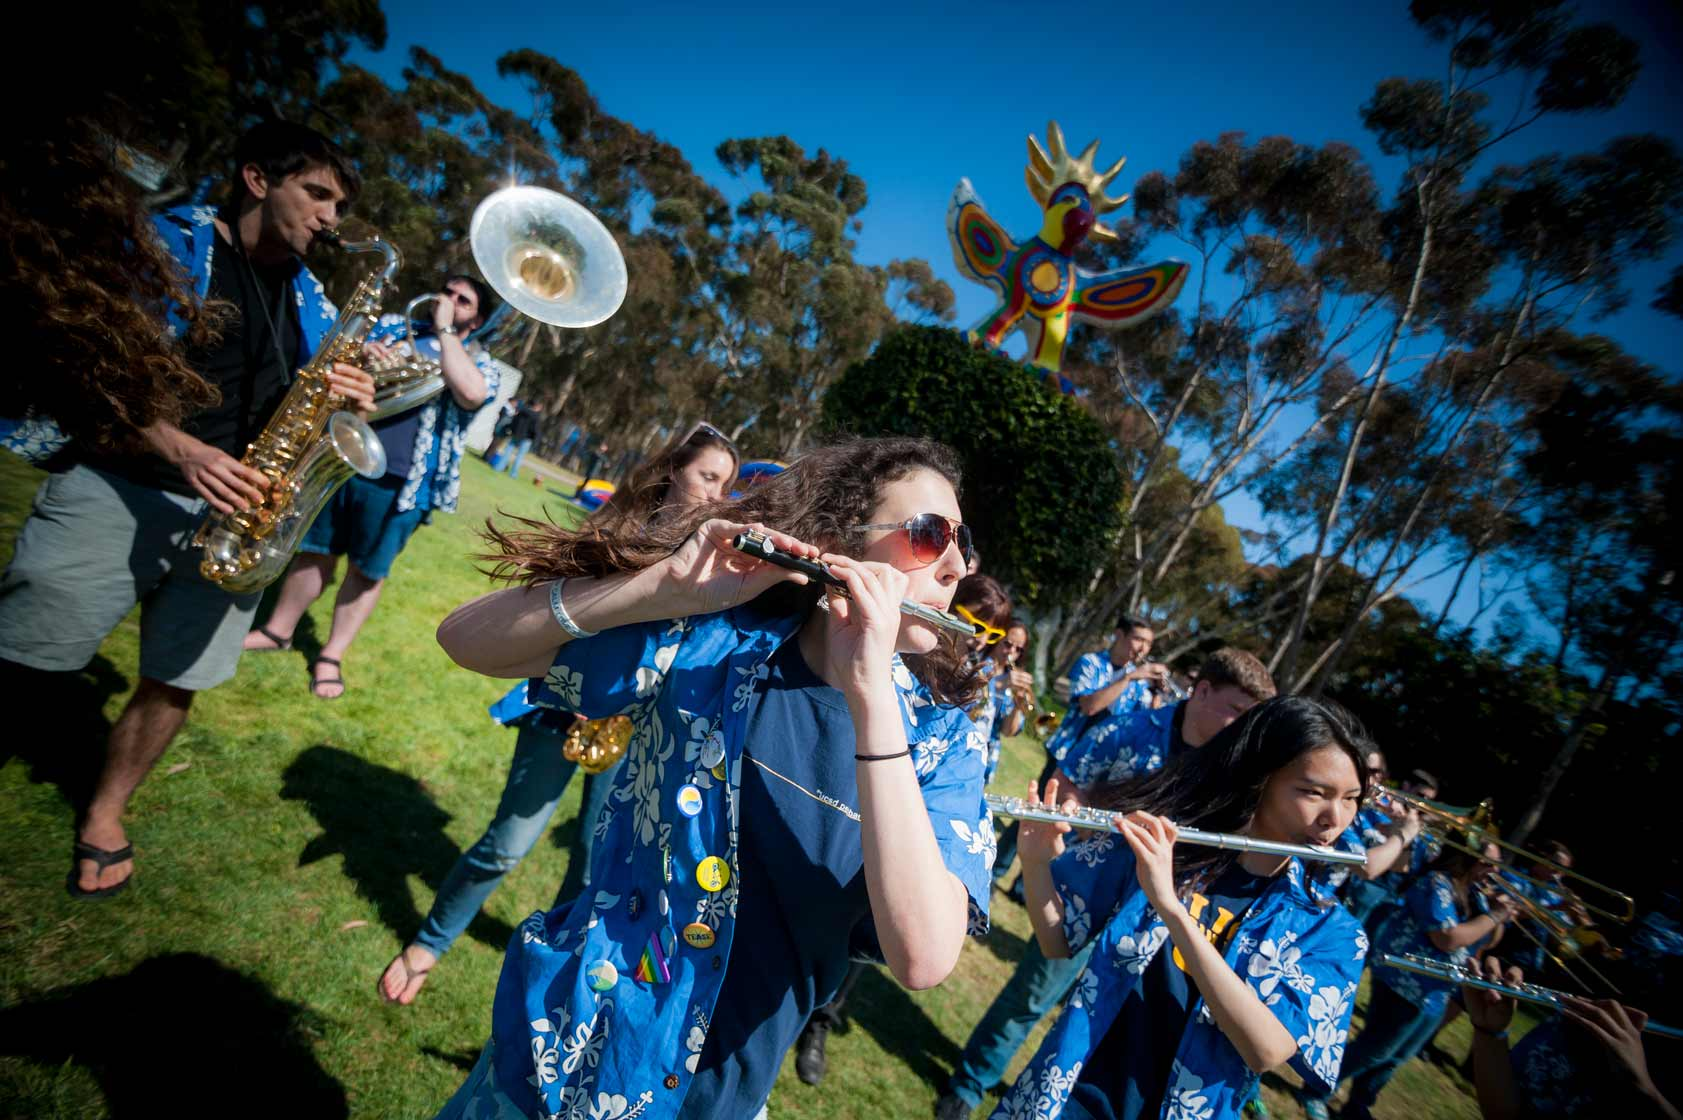 At the Triton Festival, admitted students were invited to connect with current students in a relaxed and social atmosphere. <br><br> Erik Jepsen/UC San Diego Publications